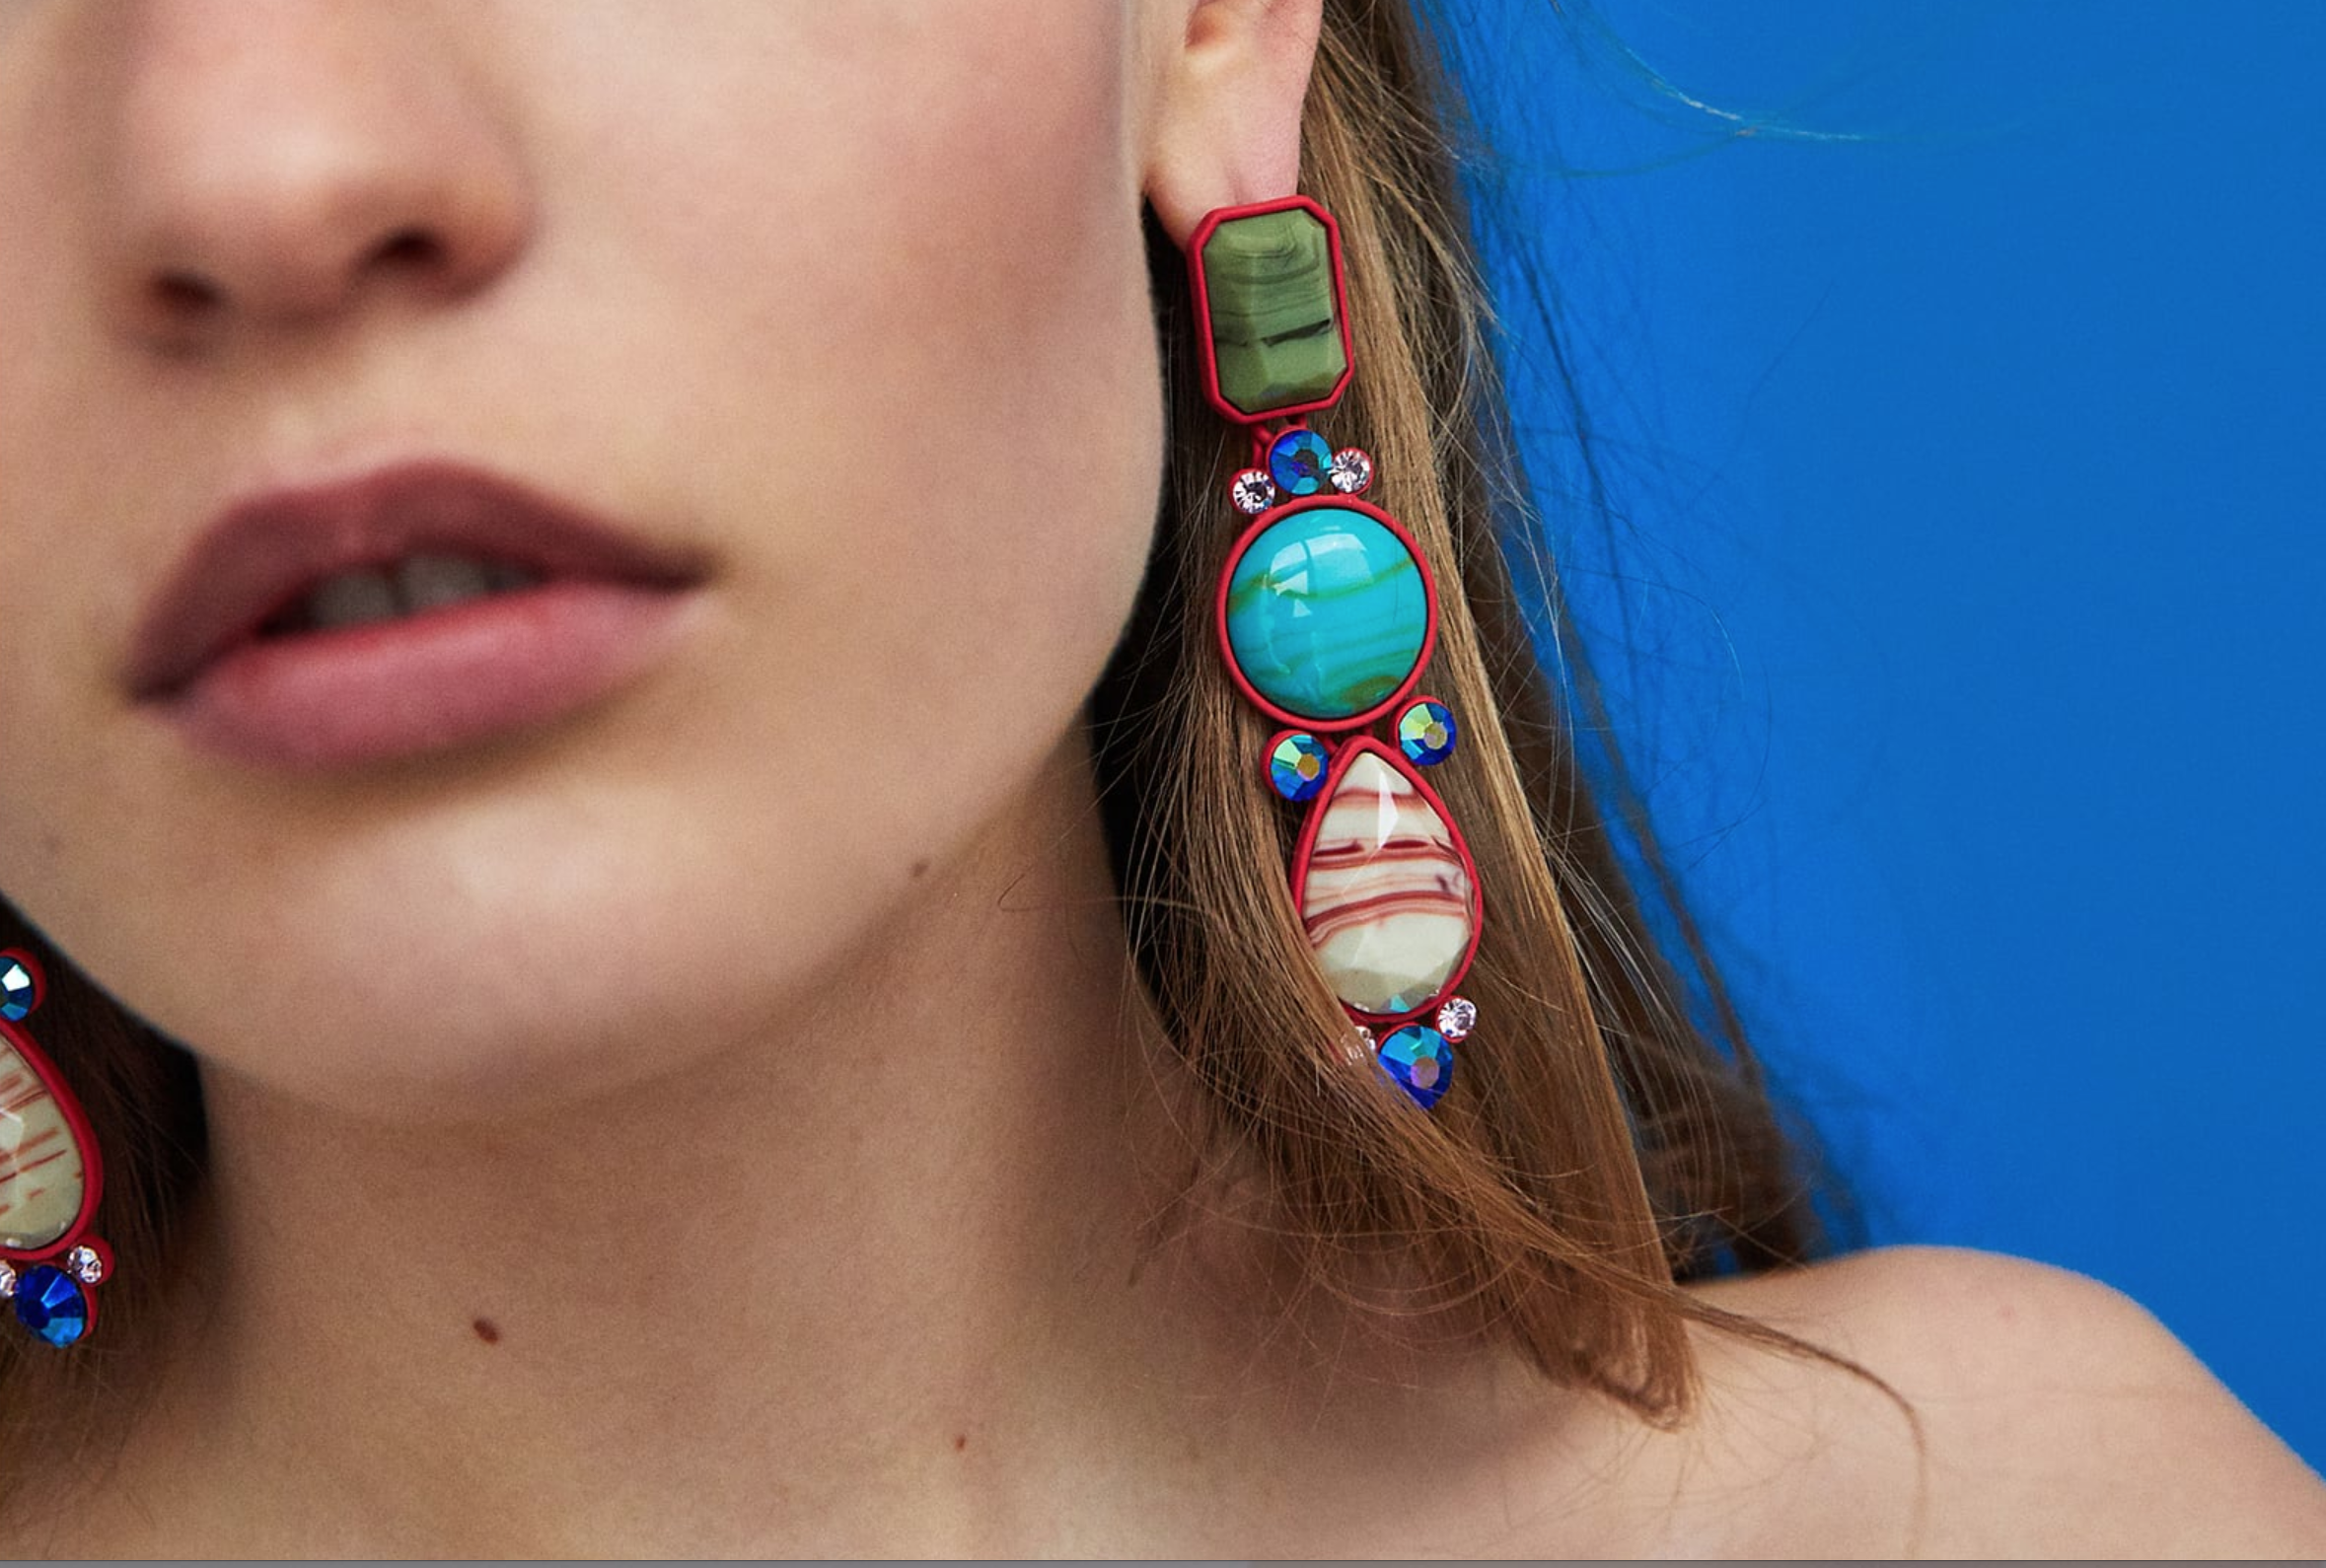 Geometric earrings with red border - Super cool dangle earrings with a red border and three different shaped and coloured stones. I think they would look amazing with a black T-shirt or dress. Such an amazing eye-catching set of earrings. You can find those at Zara here for £12.99.